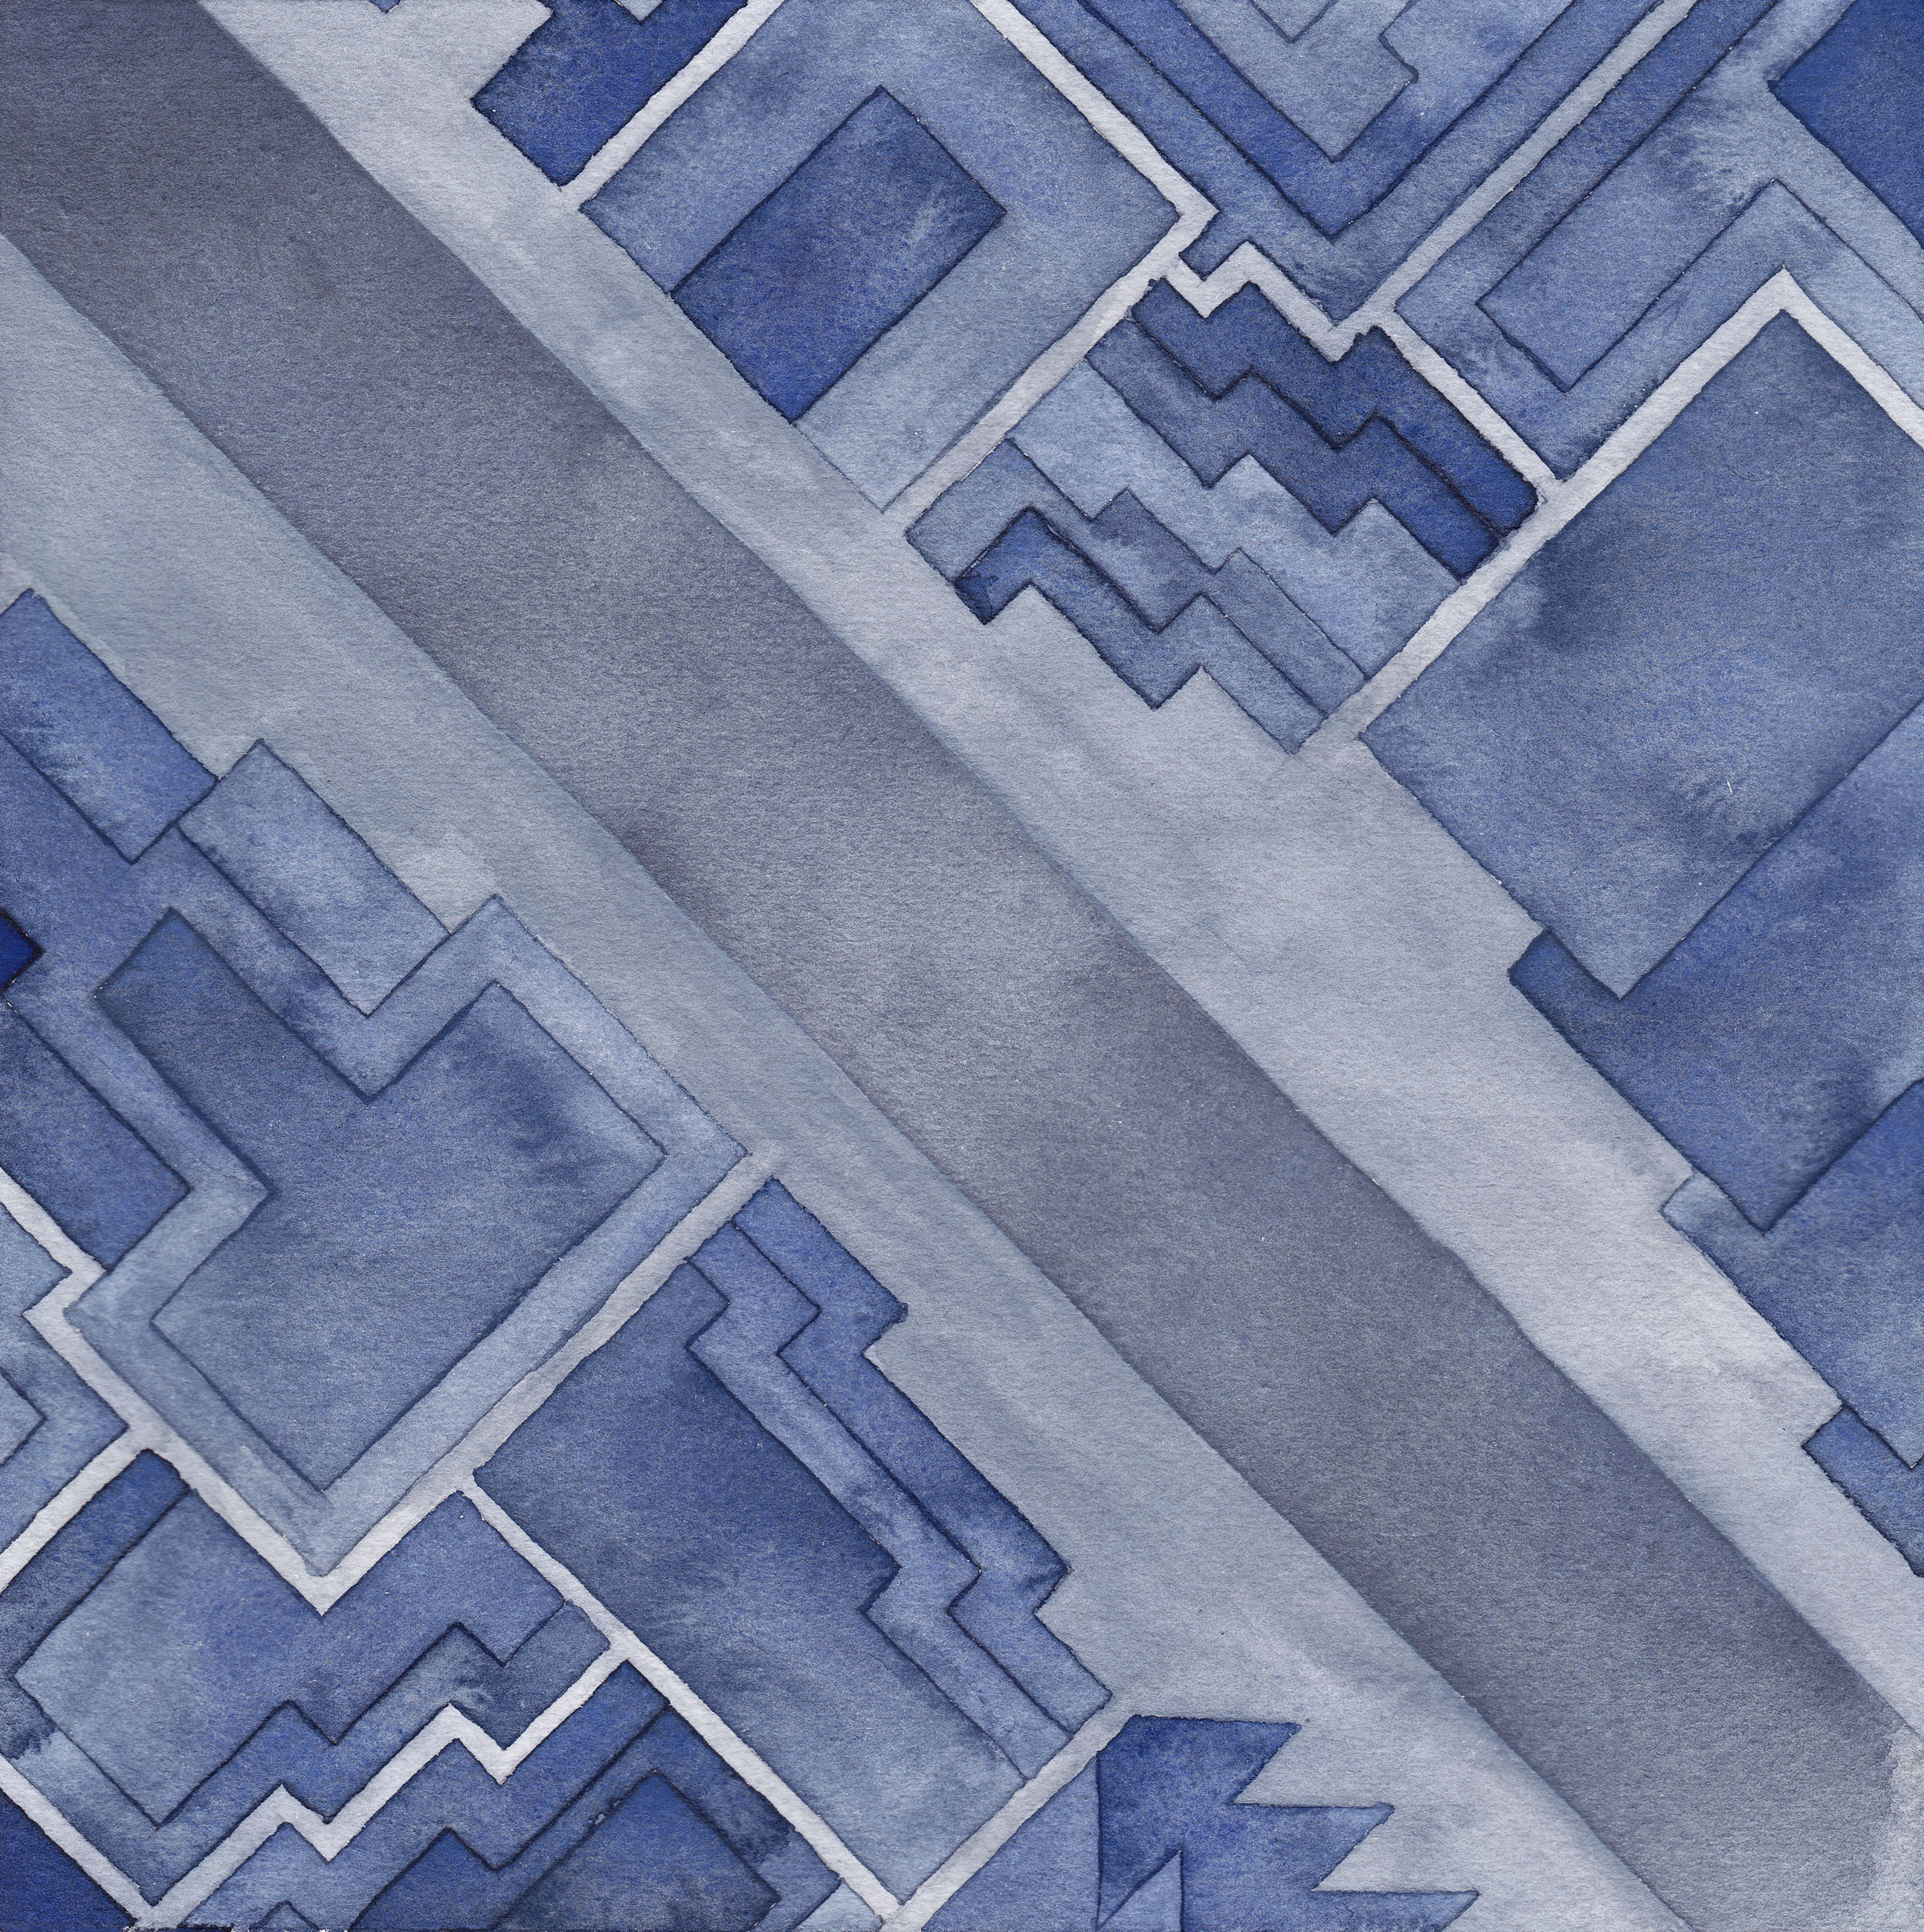 Cityscape (4Levels),  2014  watercolor on watercolor paper  8 x 8 inches